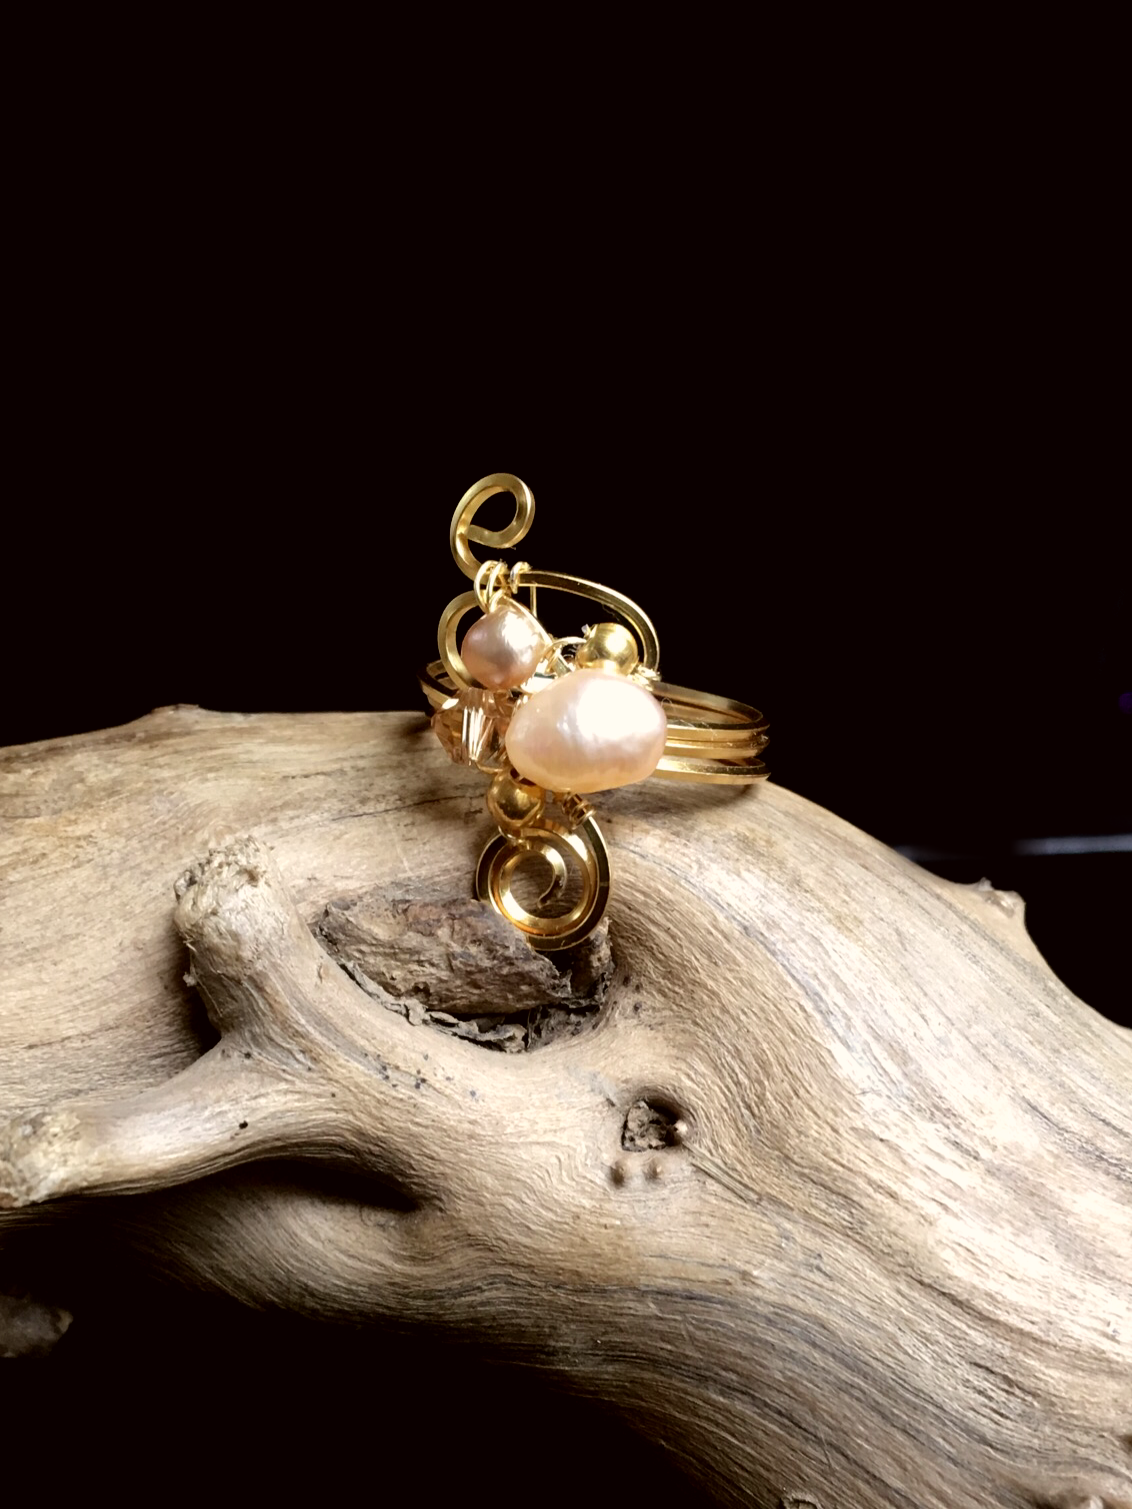 Dainty Deva Ring - Pearl and swarovsky - Silver Plated Gold color